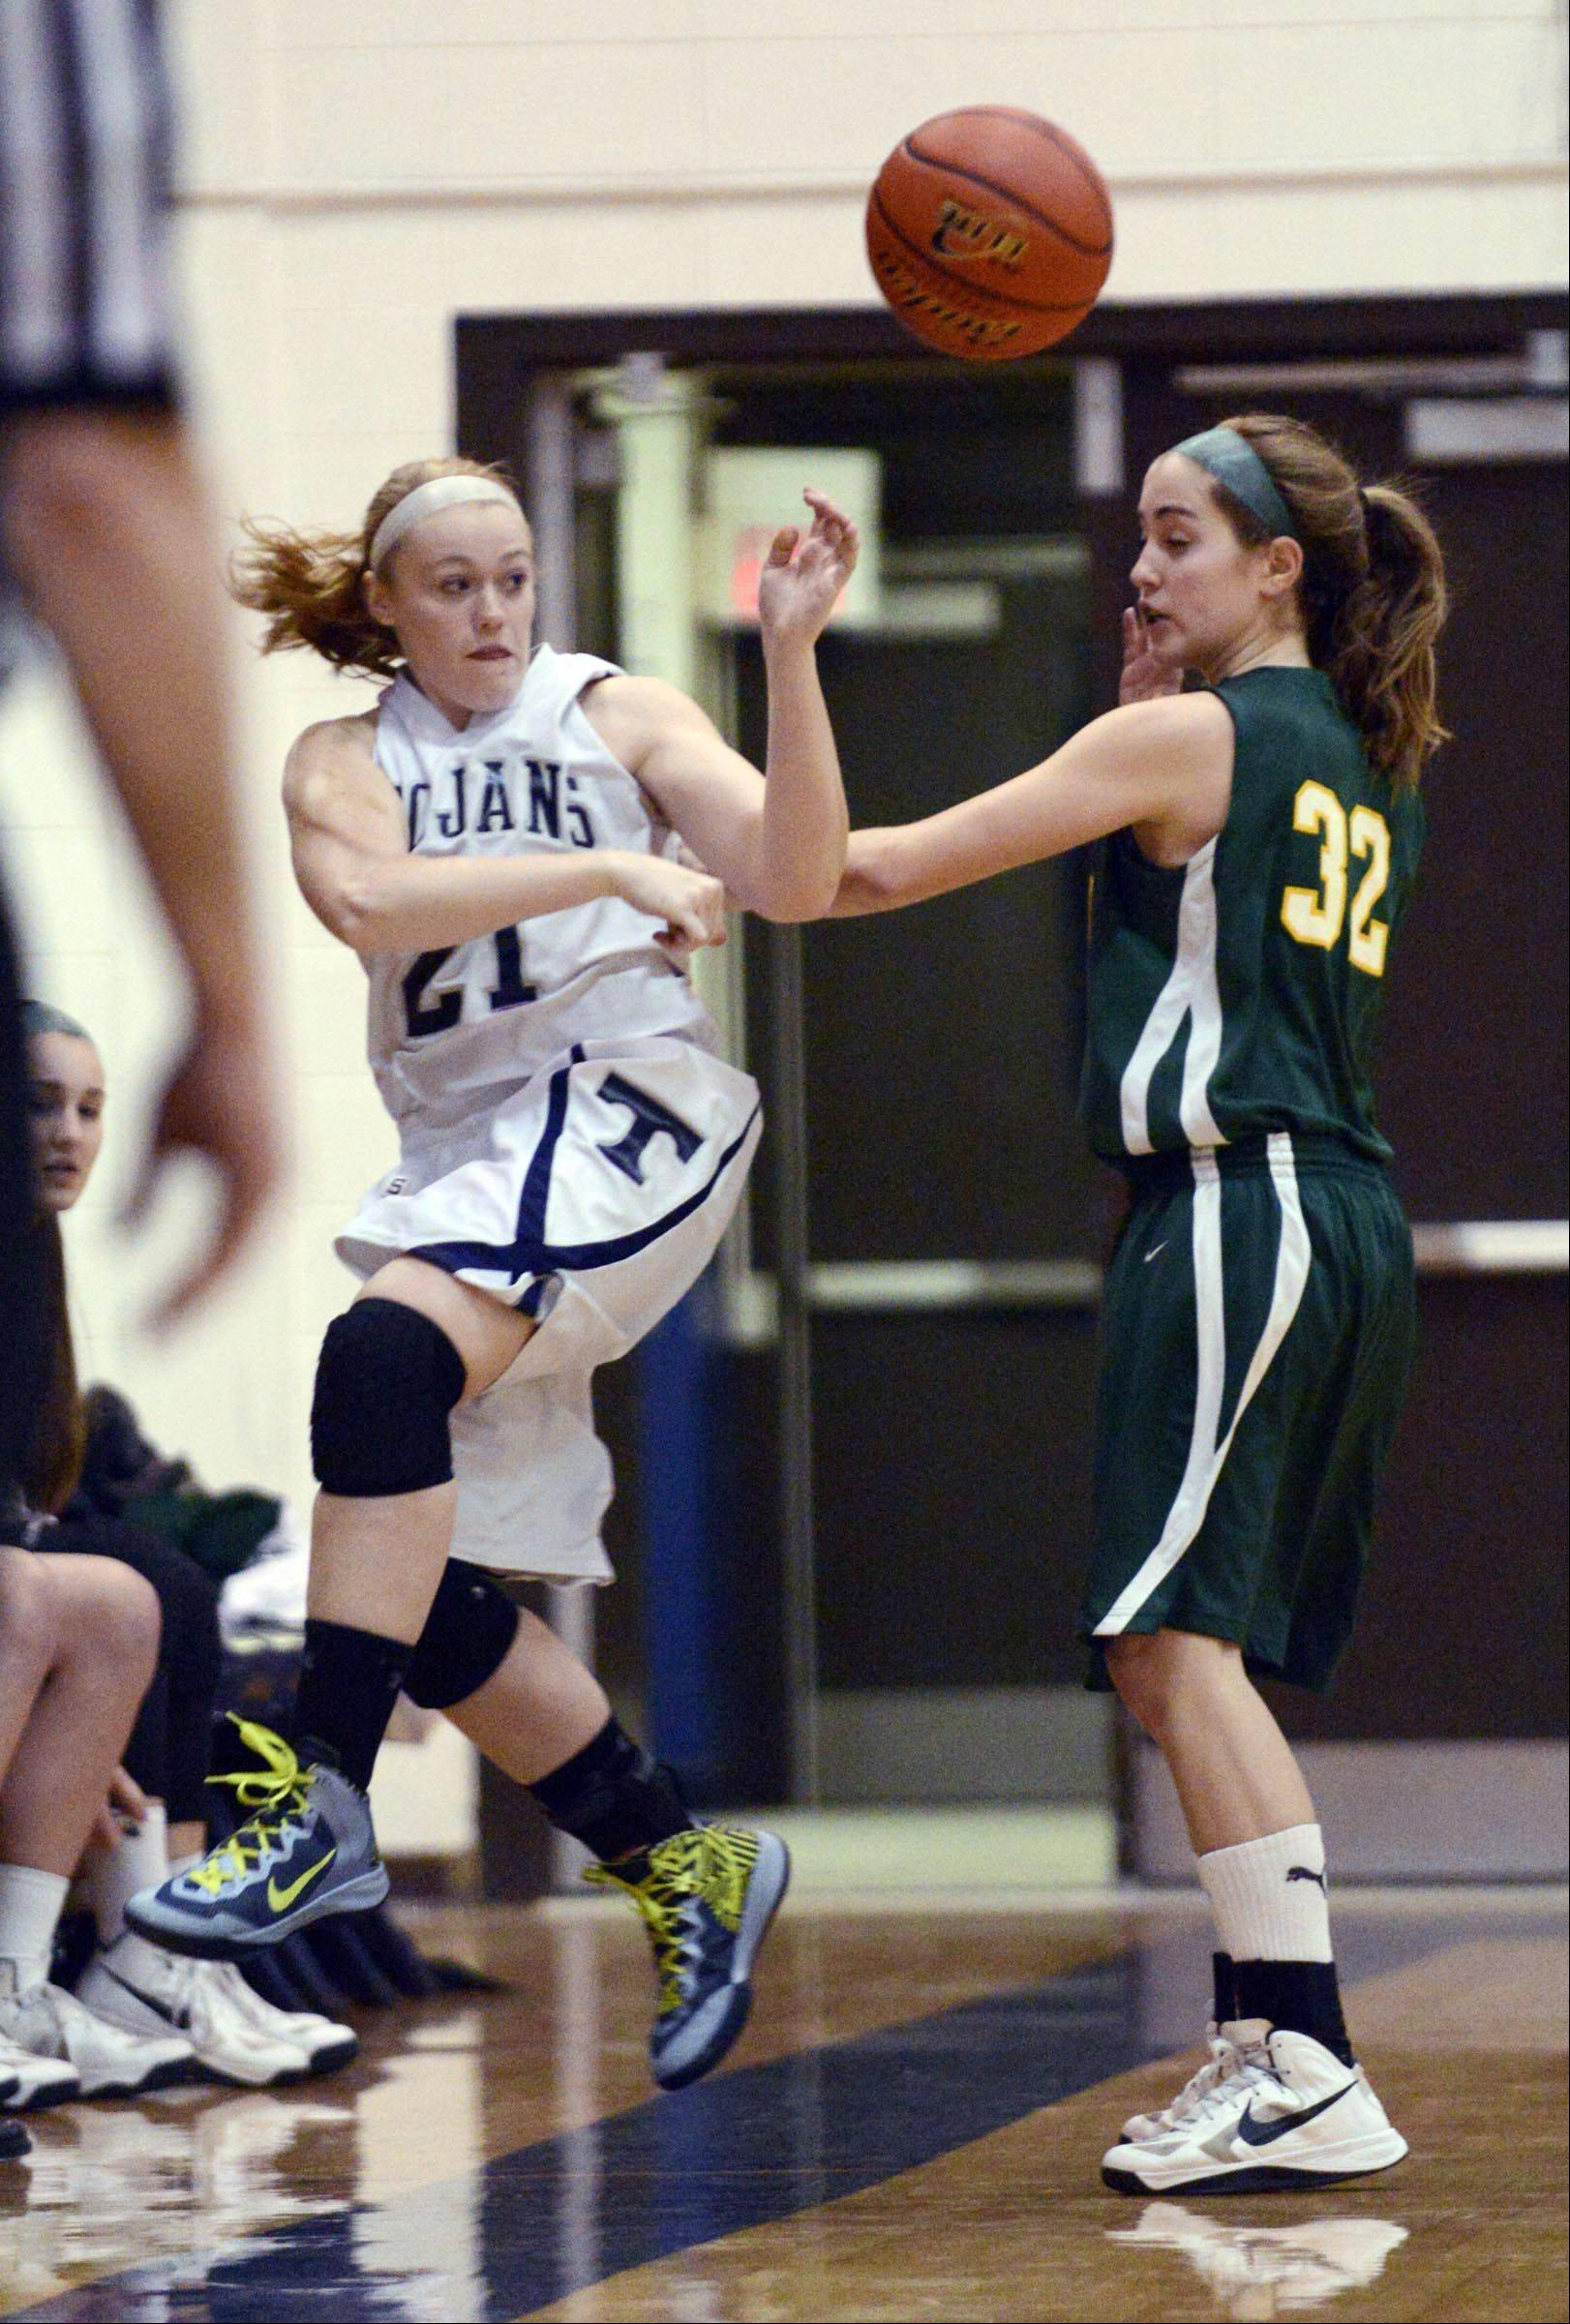 Images from the Stevenson vs. Cary-Grove girls basketball game Wednesday, January 23, 2013.